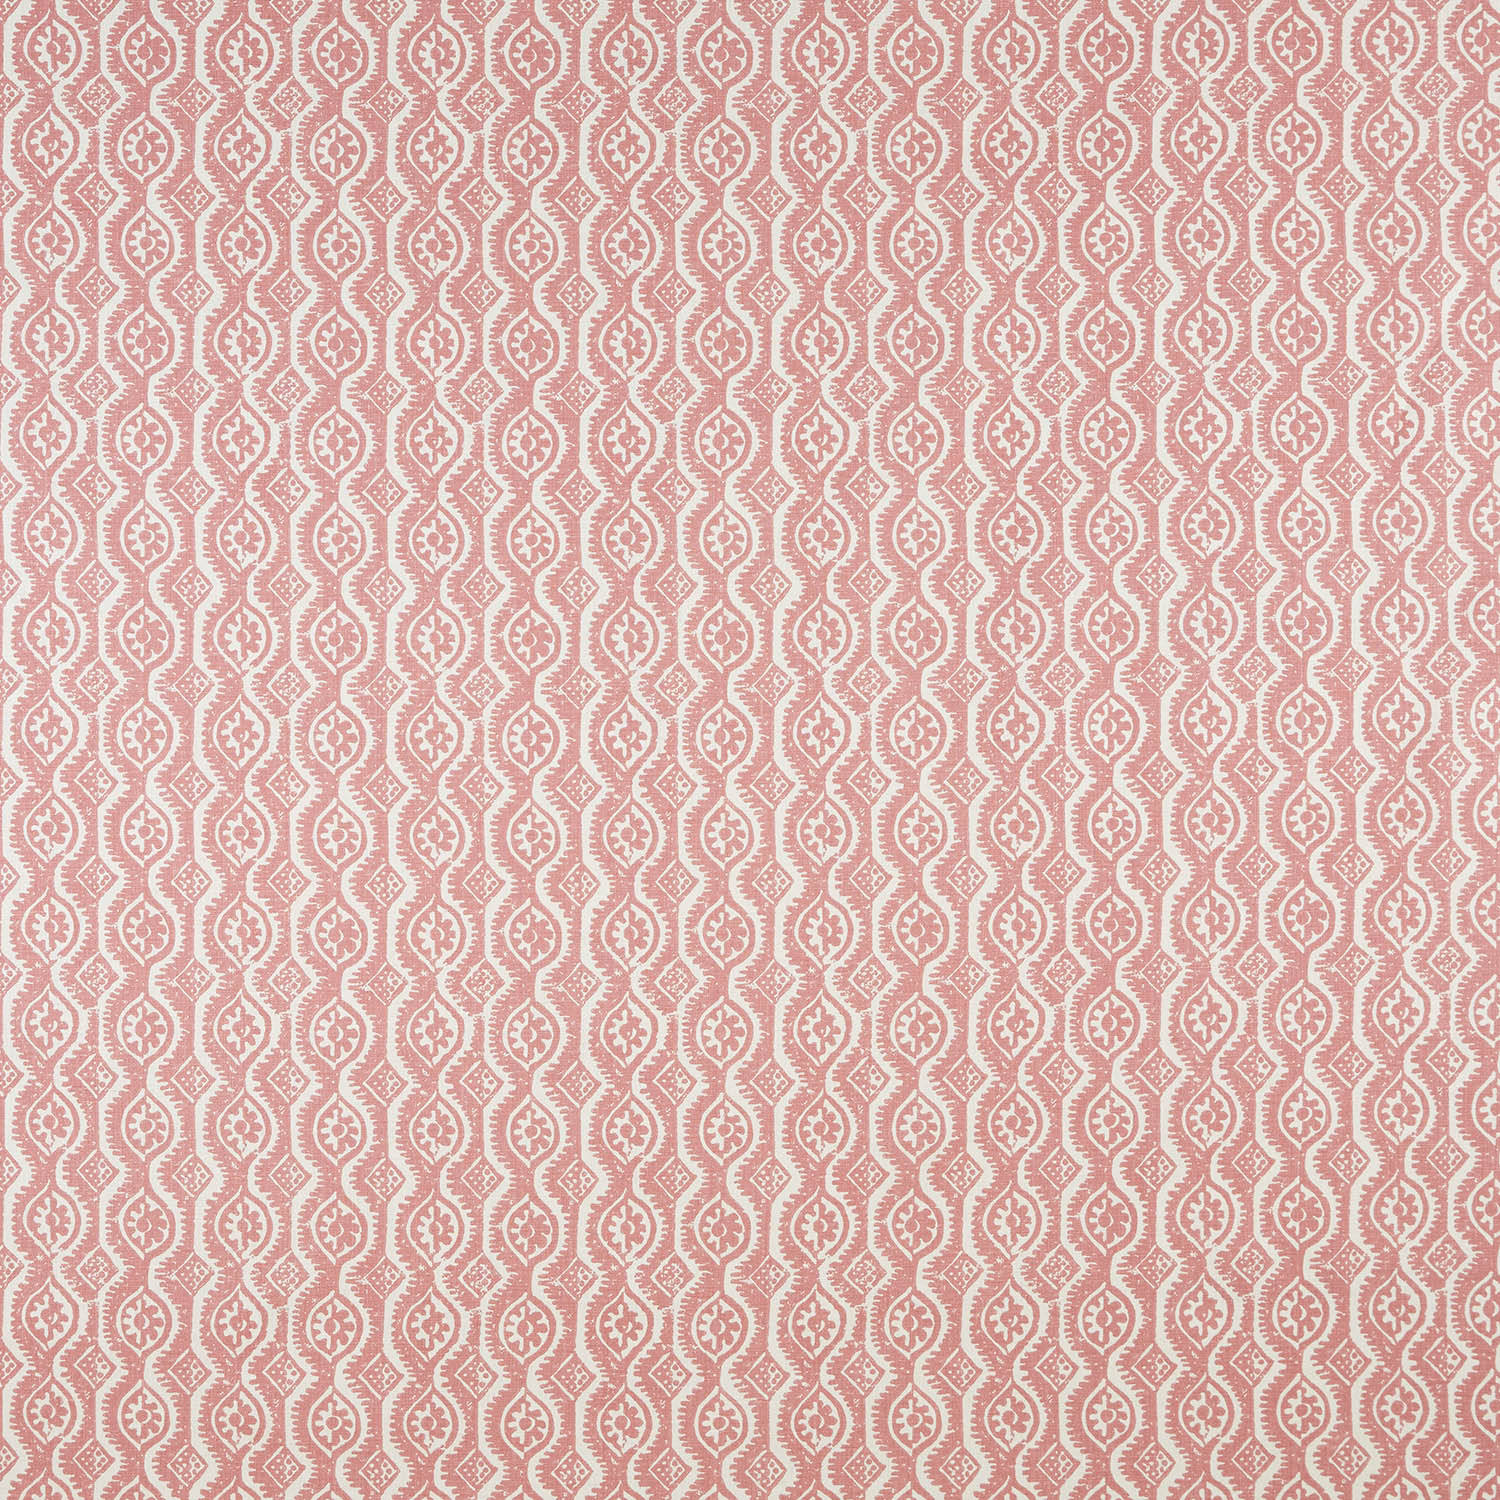 <p><strong>SMALL DAMASK</strong>pink/oyster 2900-12<a href=/the-somerton-collection/small-damask-pink-oyster-2900-12>More →</a></p>